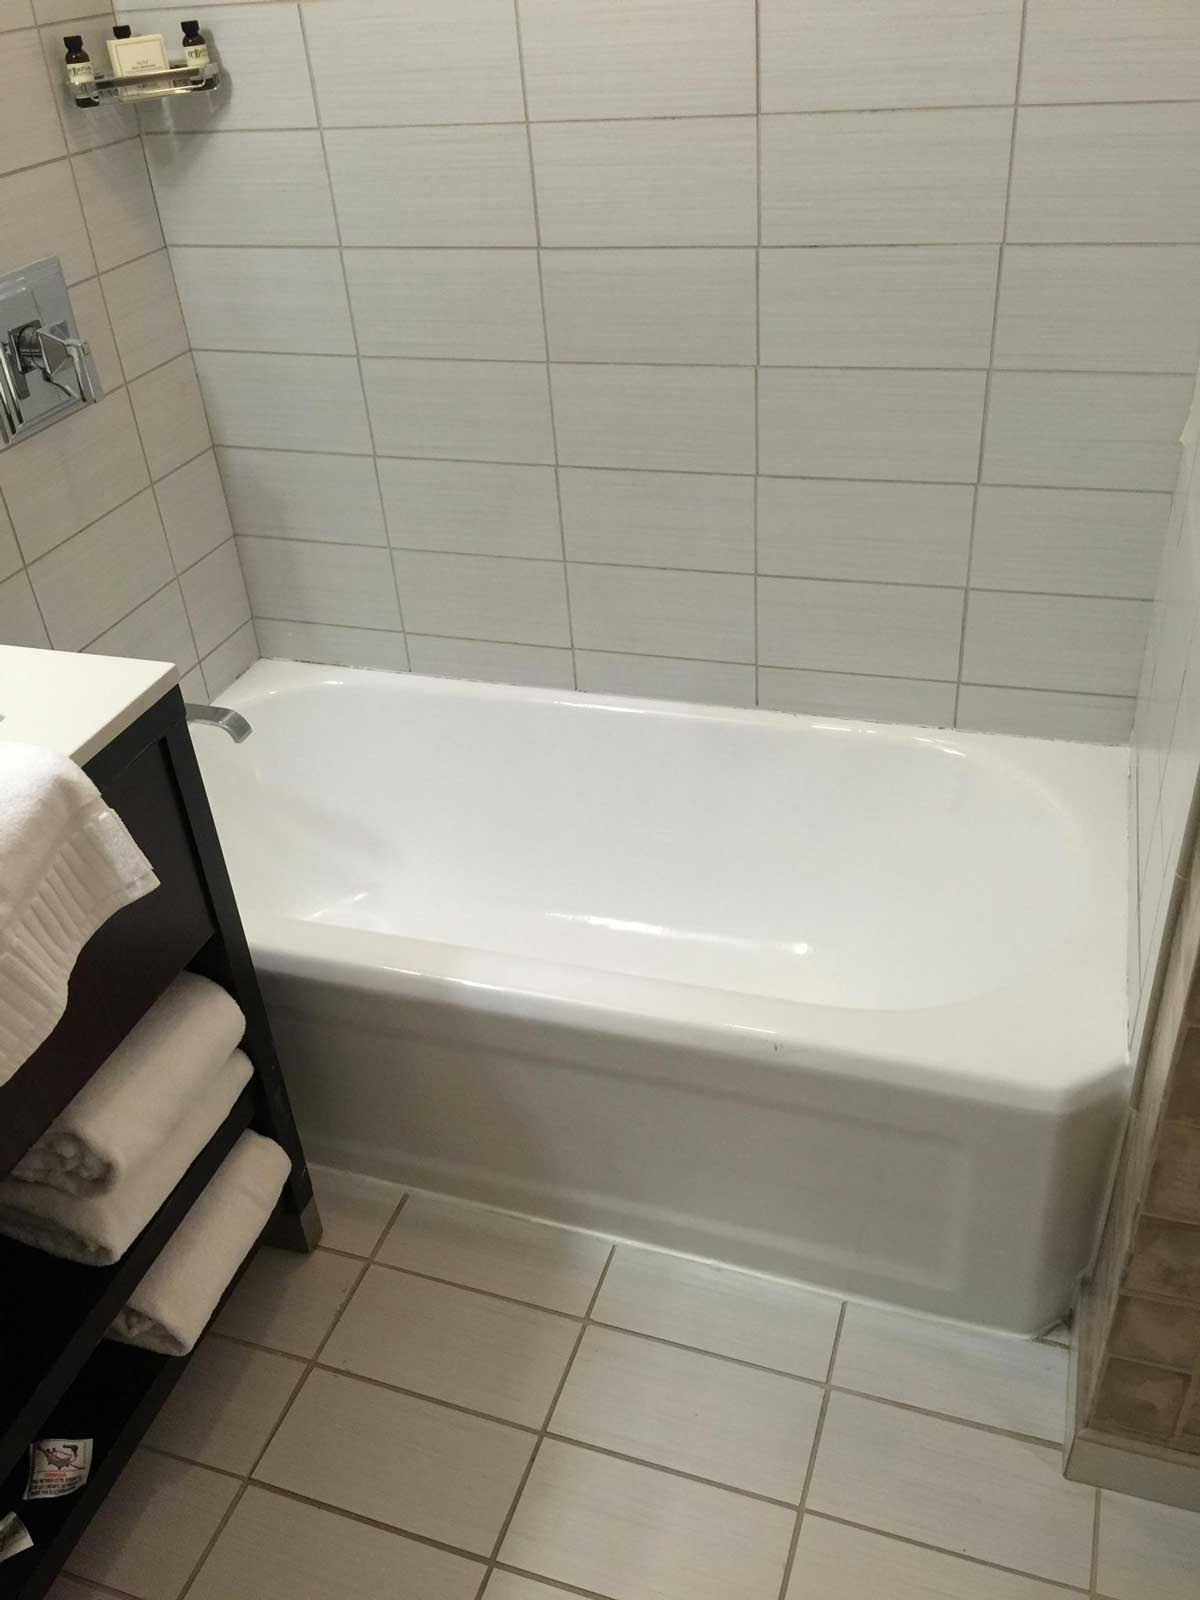 Copley Square Hotel Bathtub After Reglazing